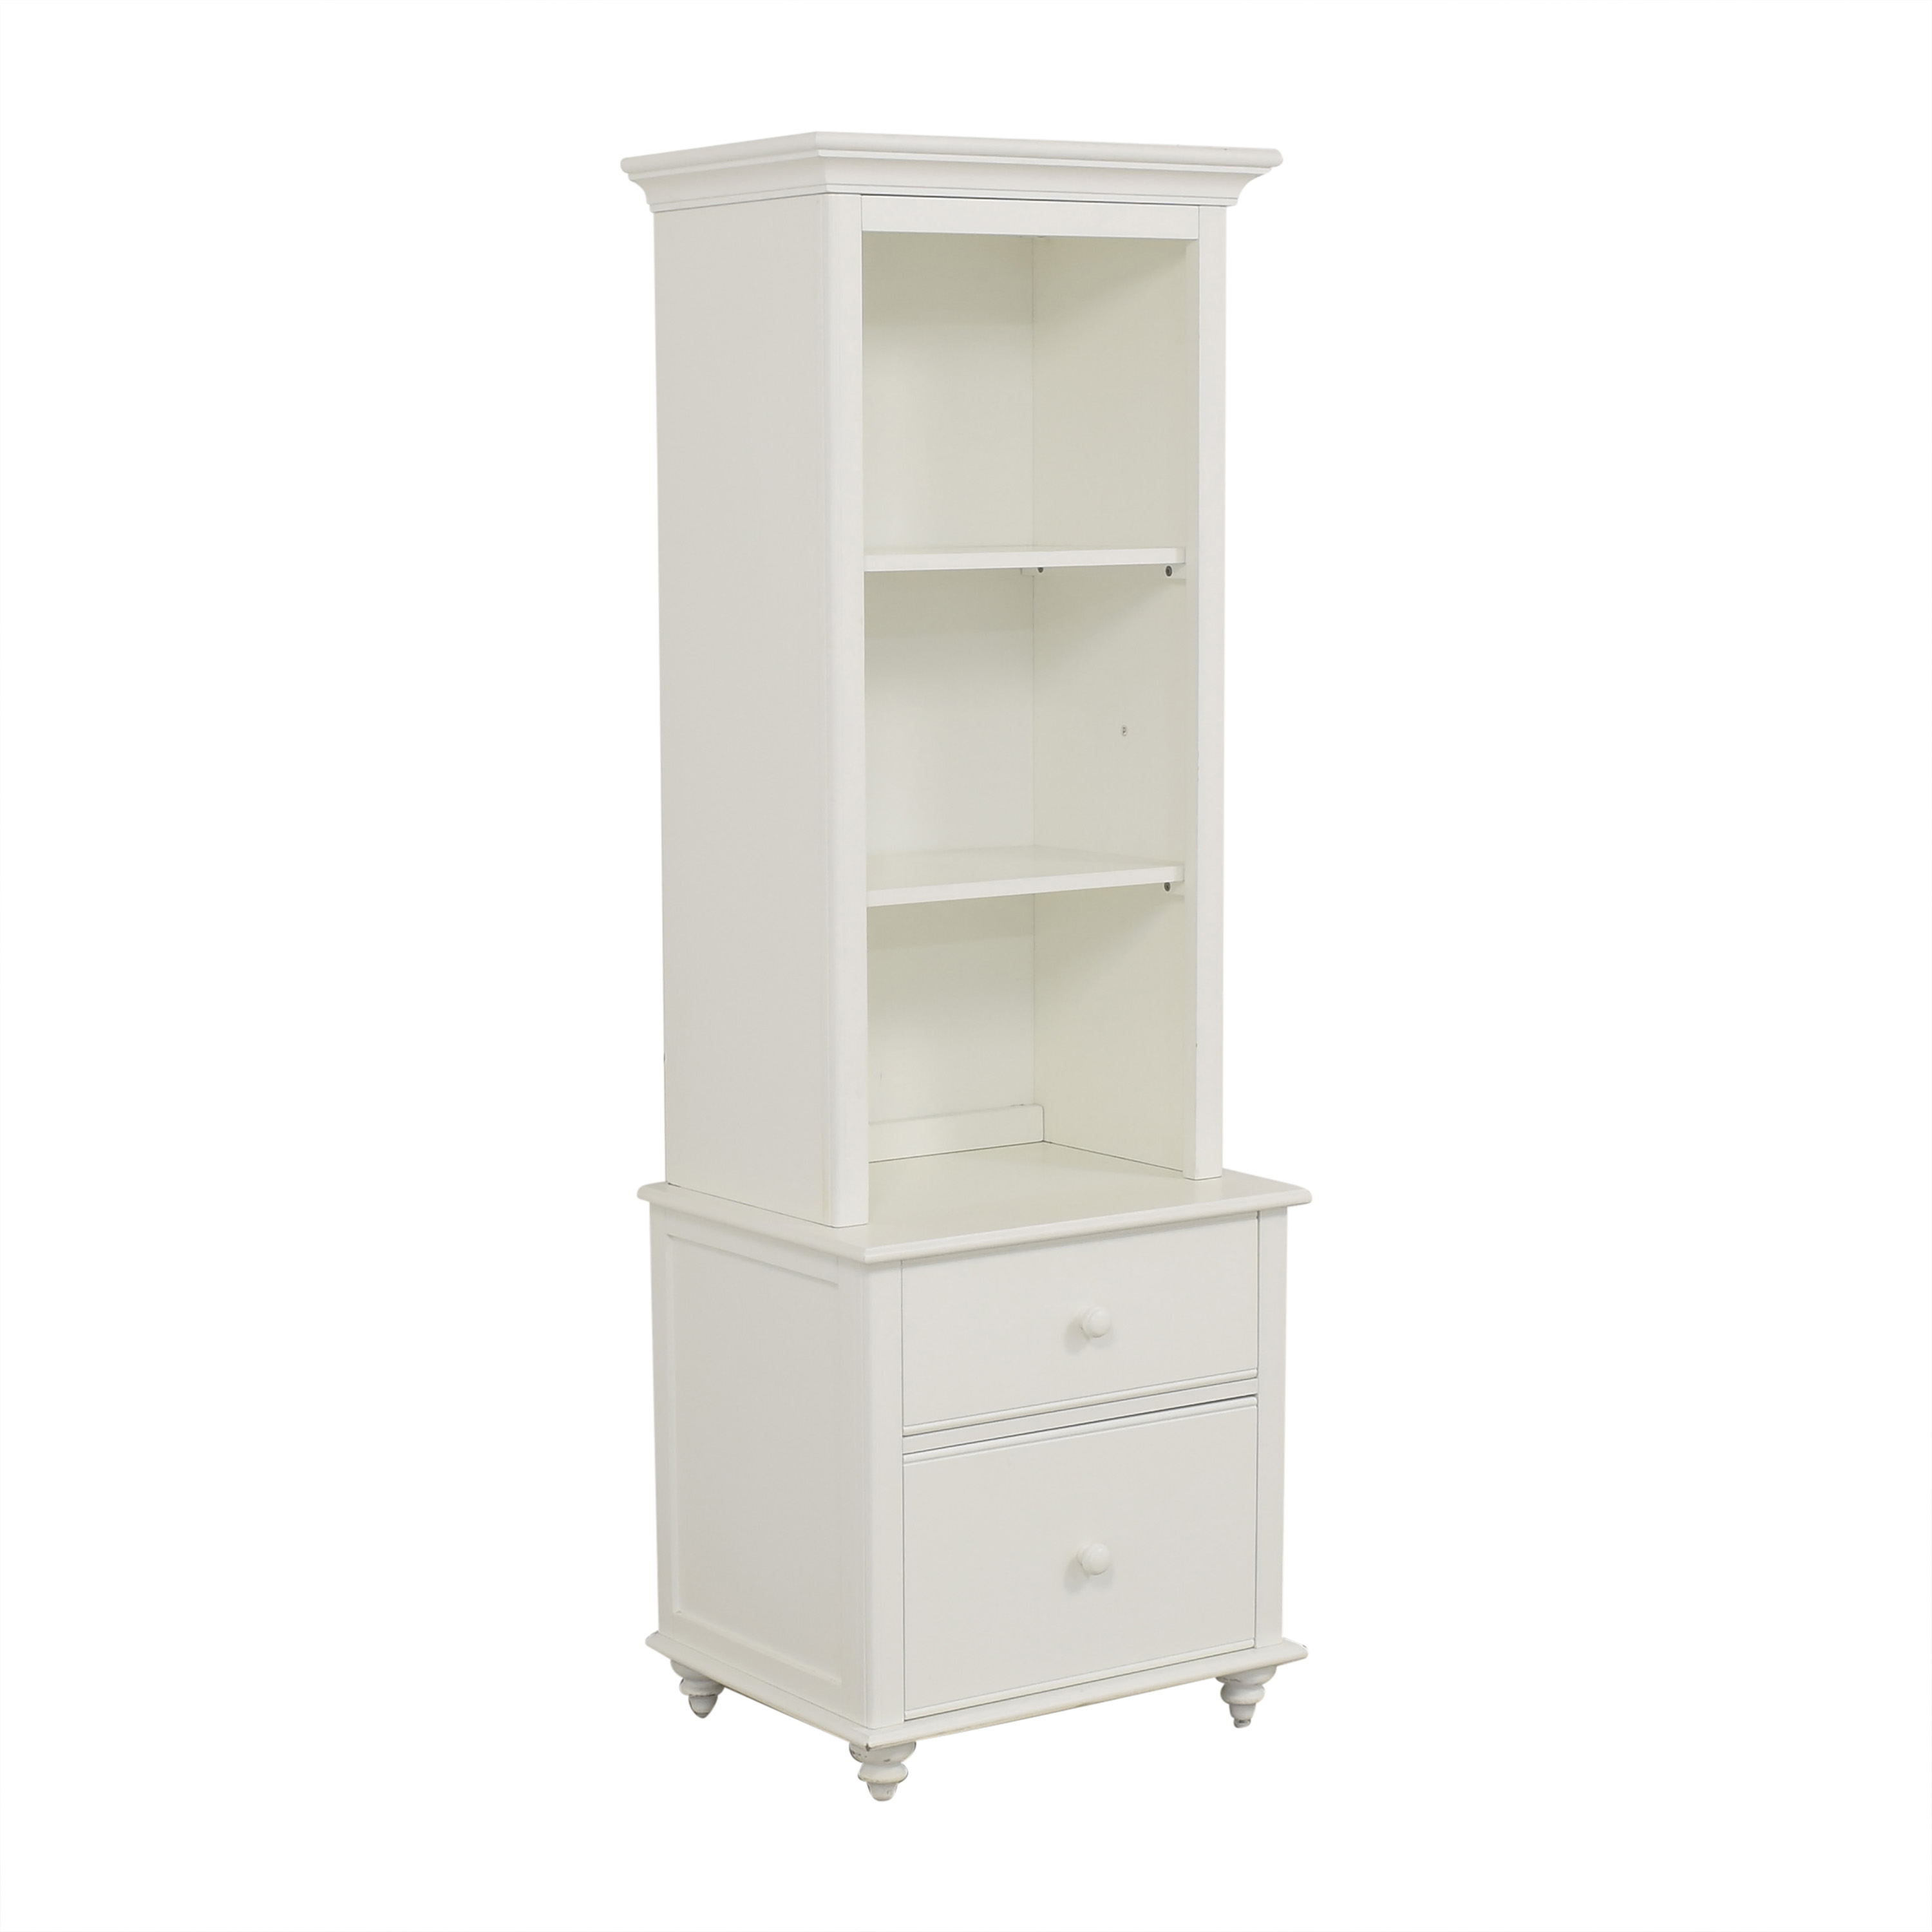 Land of Nod Land of Nod Library Chest Hutch pa